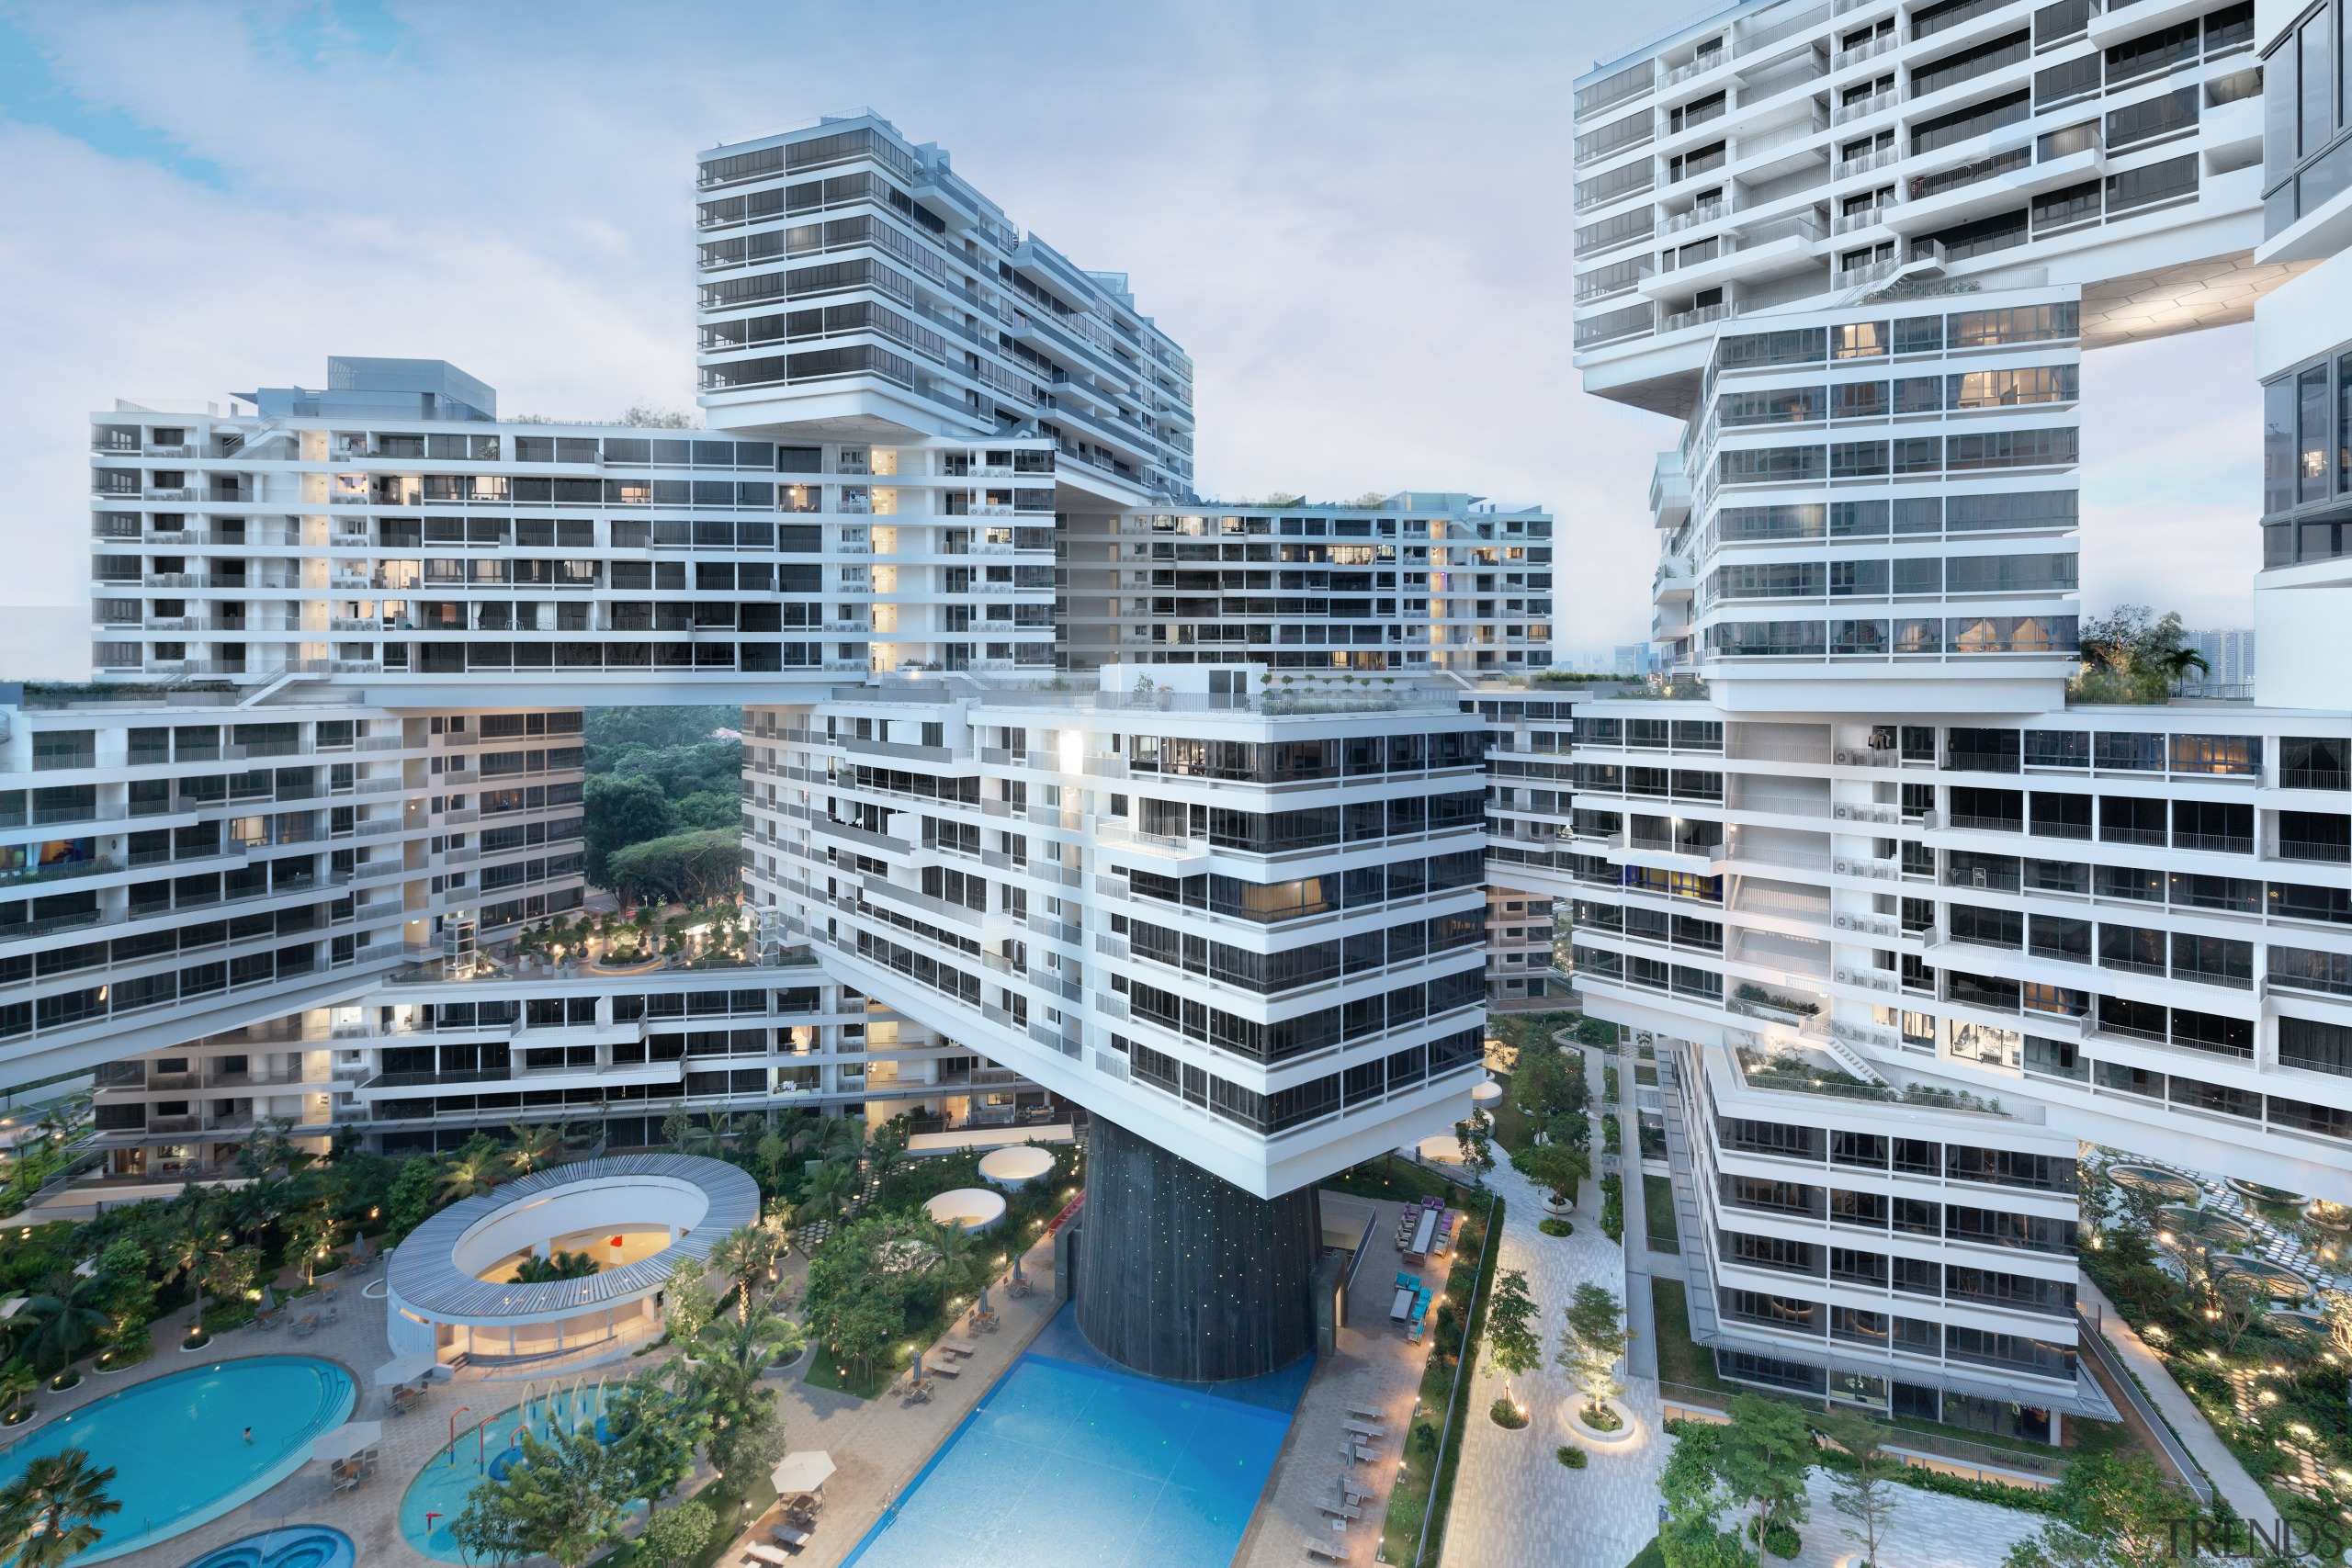 Each of the eight large courtyards  in apartment, architecture, building, city, commercial building, condominium, corporate headquarters, metropolis, metropolitan area, mixed use, property, real estate, residential area, tower block, urban area, urban design, white